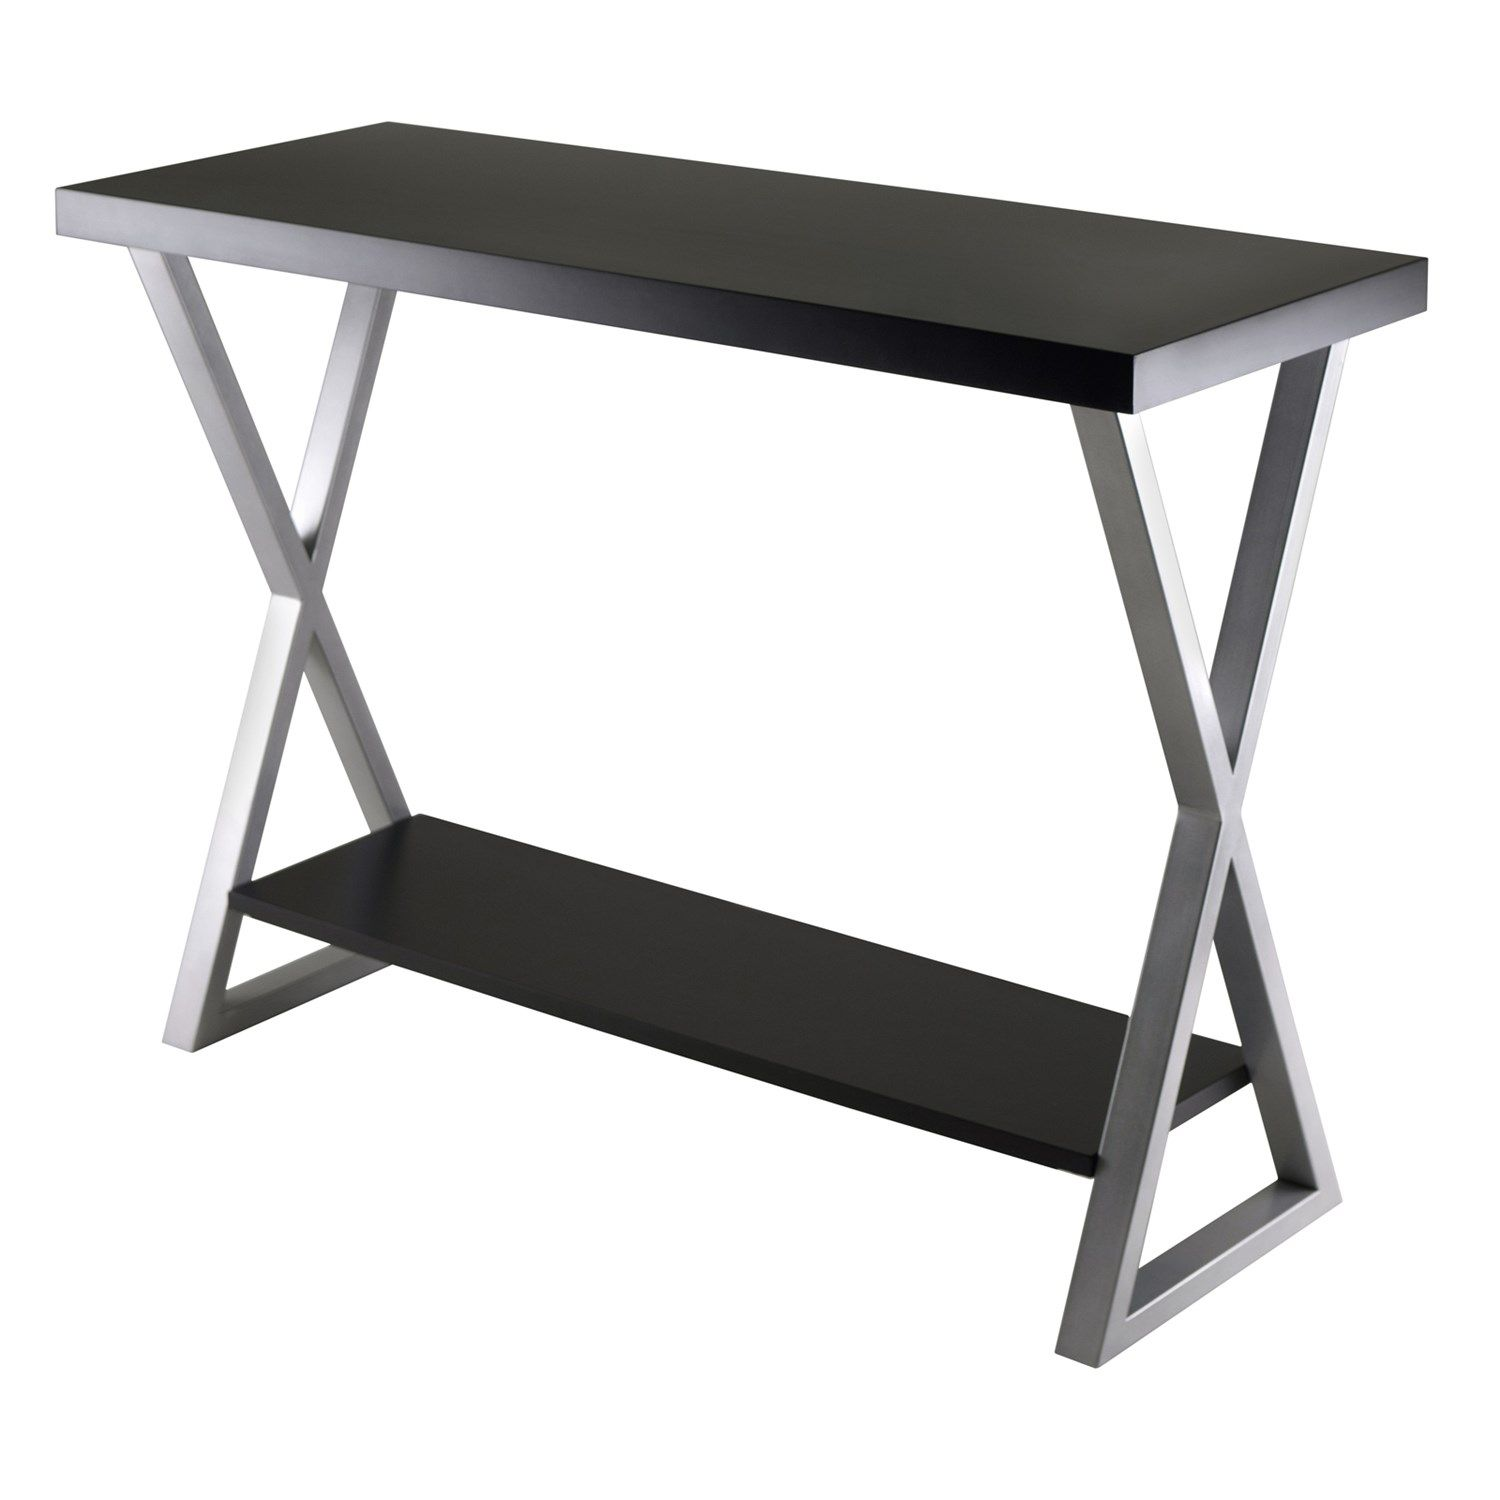 Winsome 93442 Korsa Console Table In Black/Metal